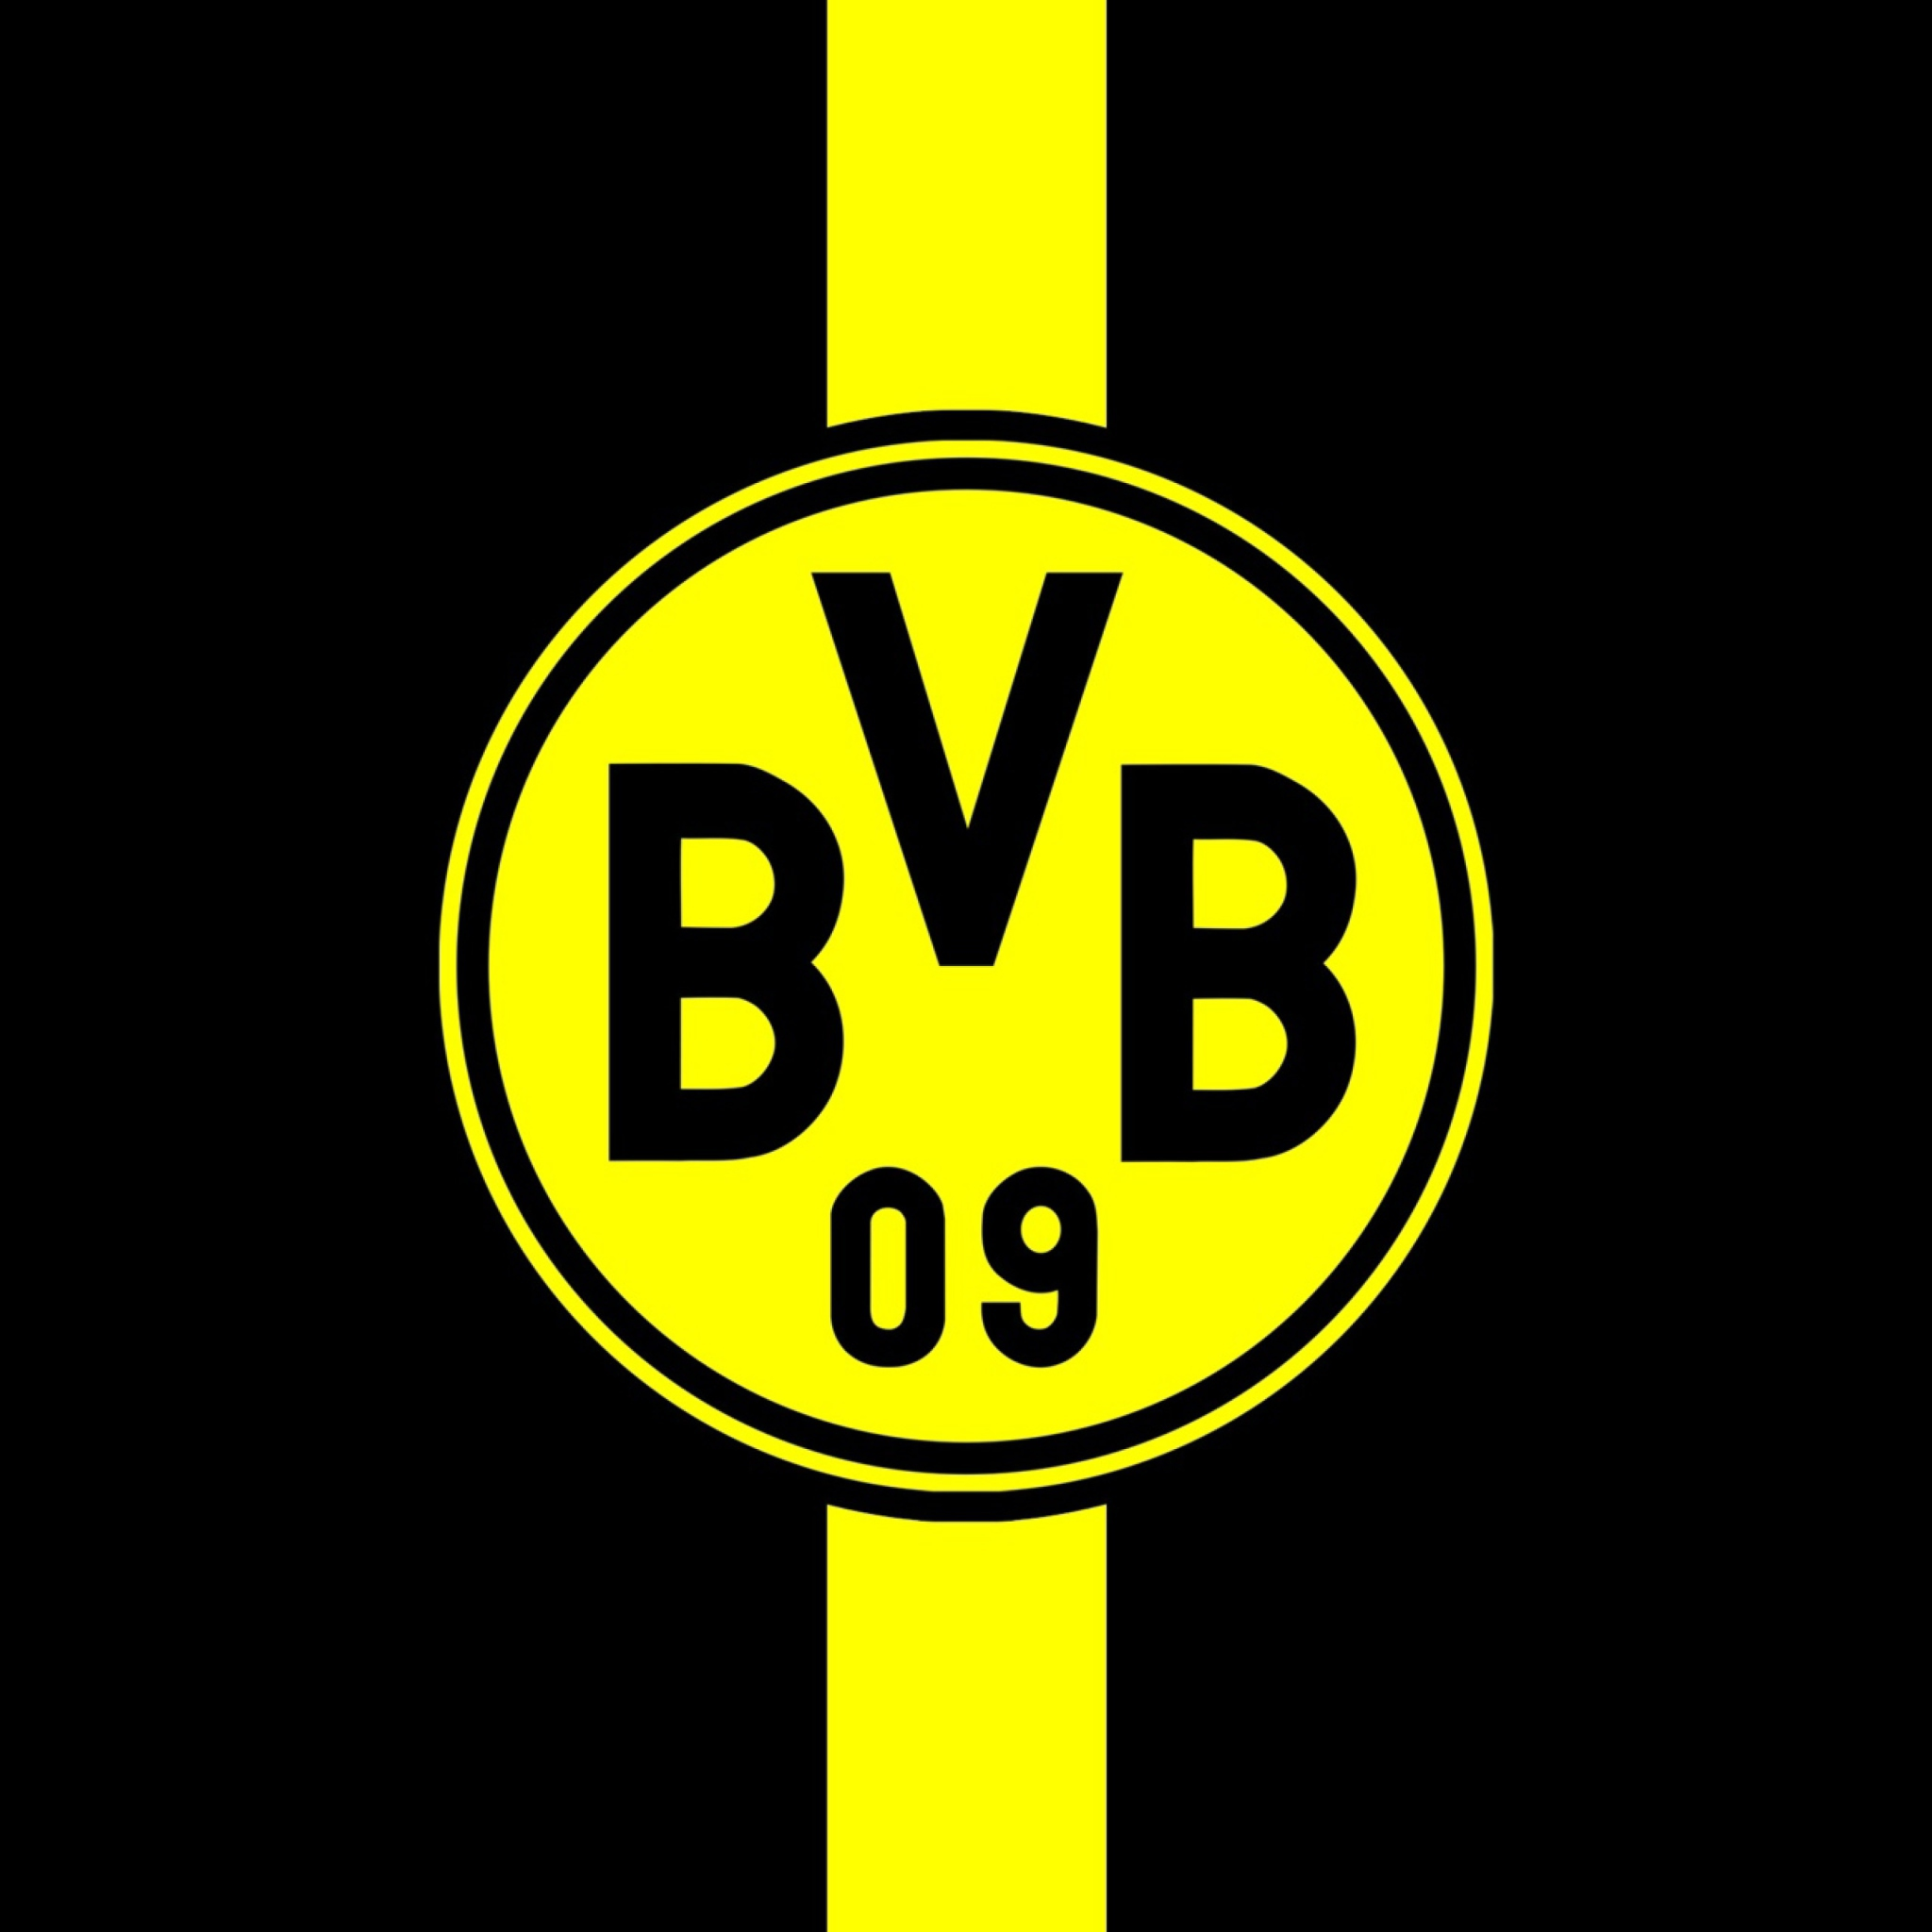 kostenloses borussia dortmund bvb wallpaper f r 2048x2048. Black Bedroom Furniture Sets. Home Design Ideas